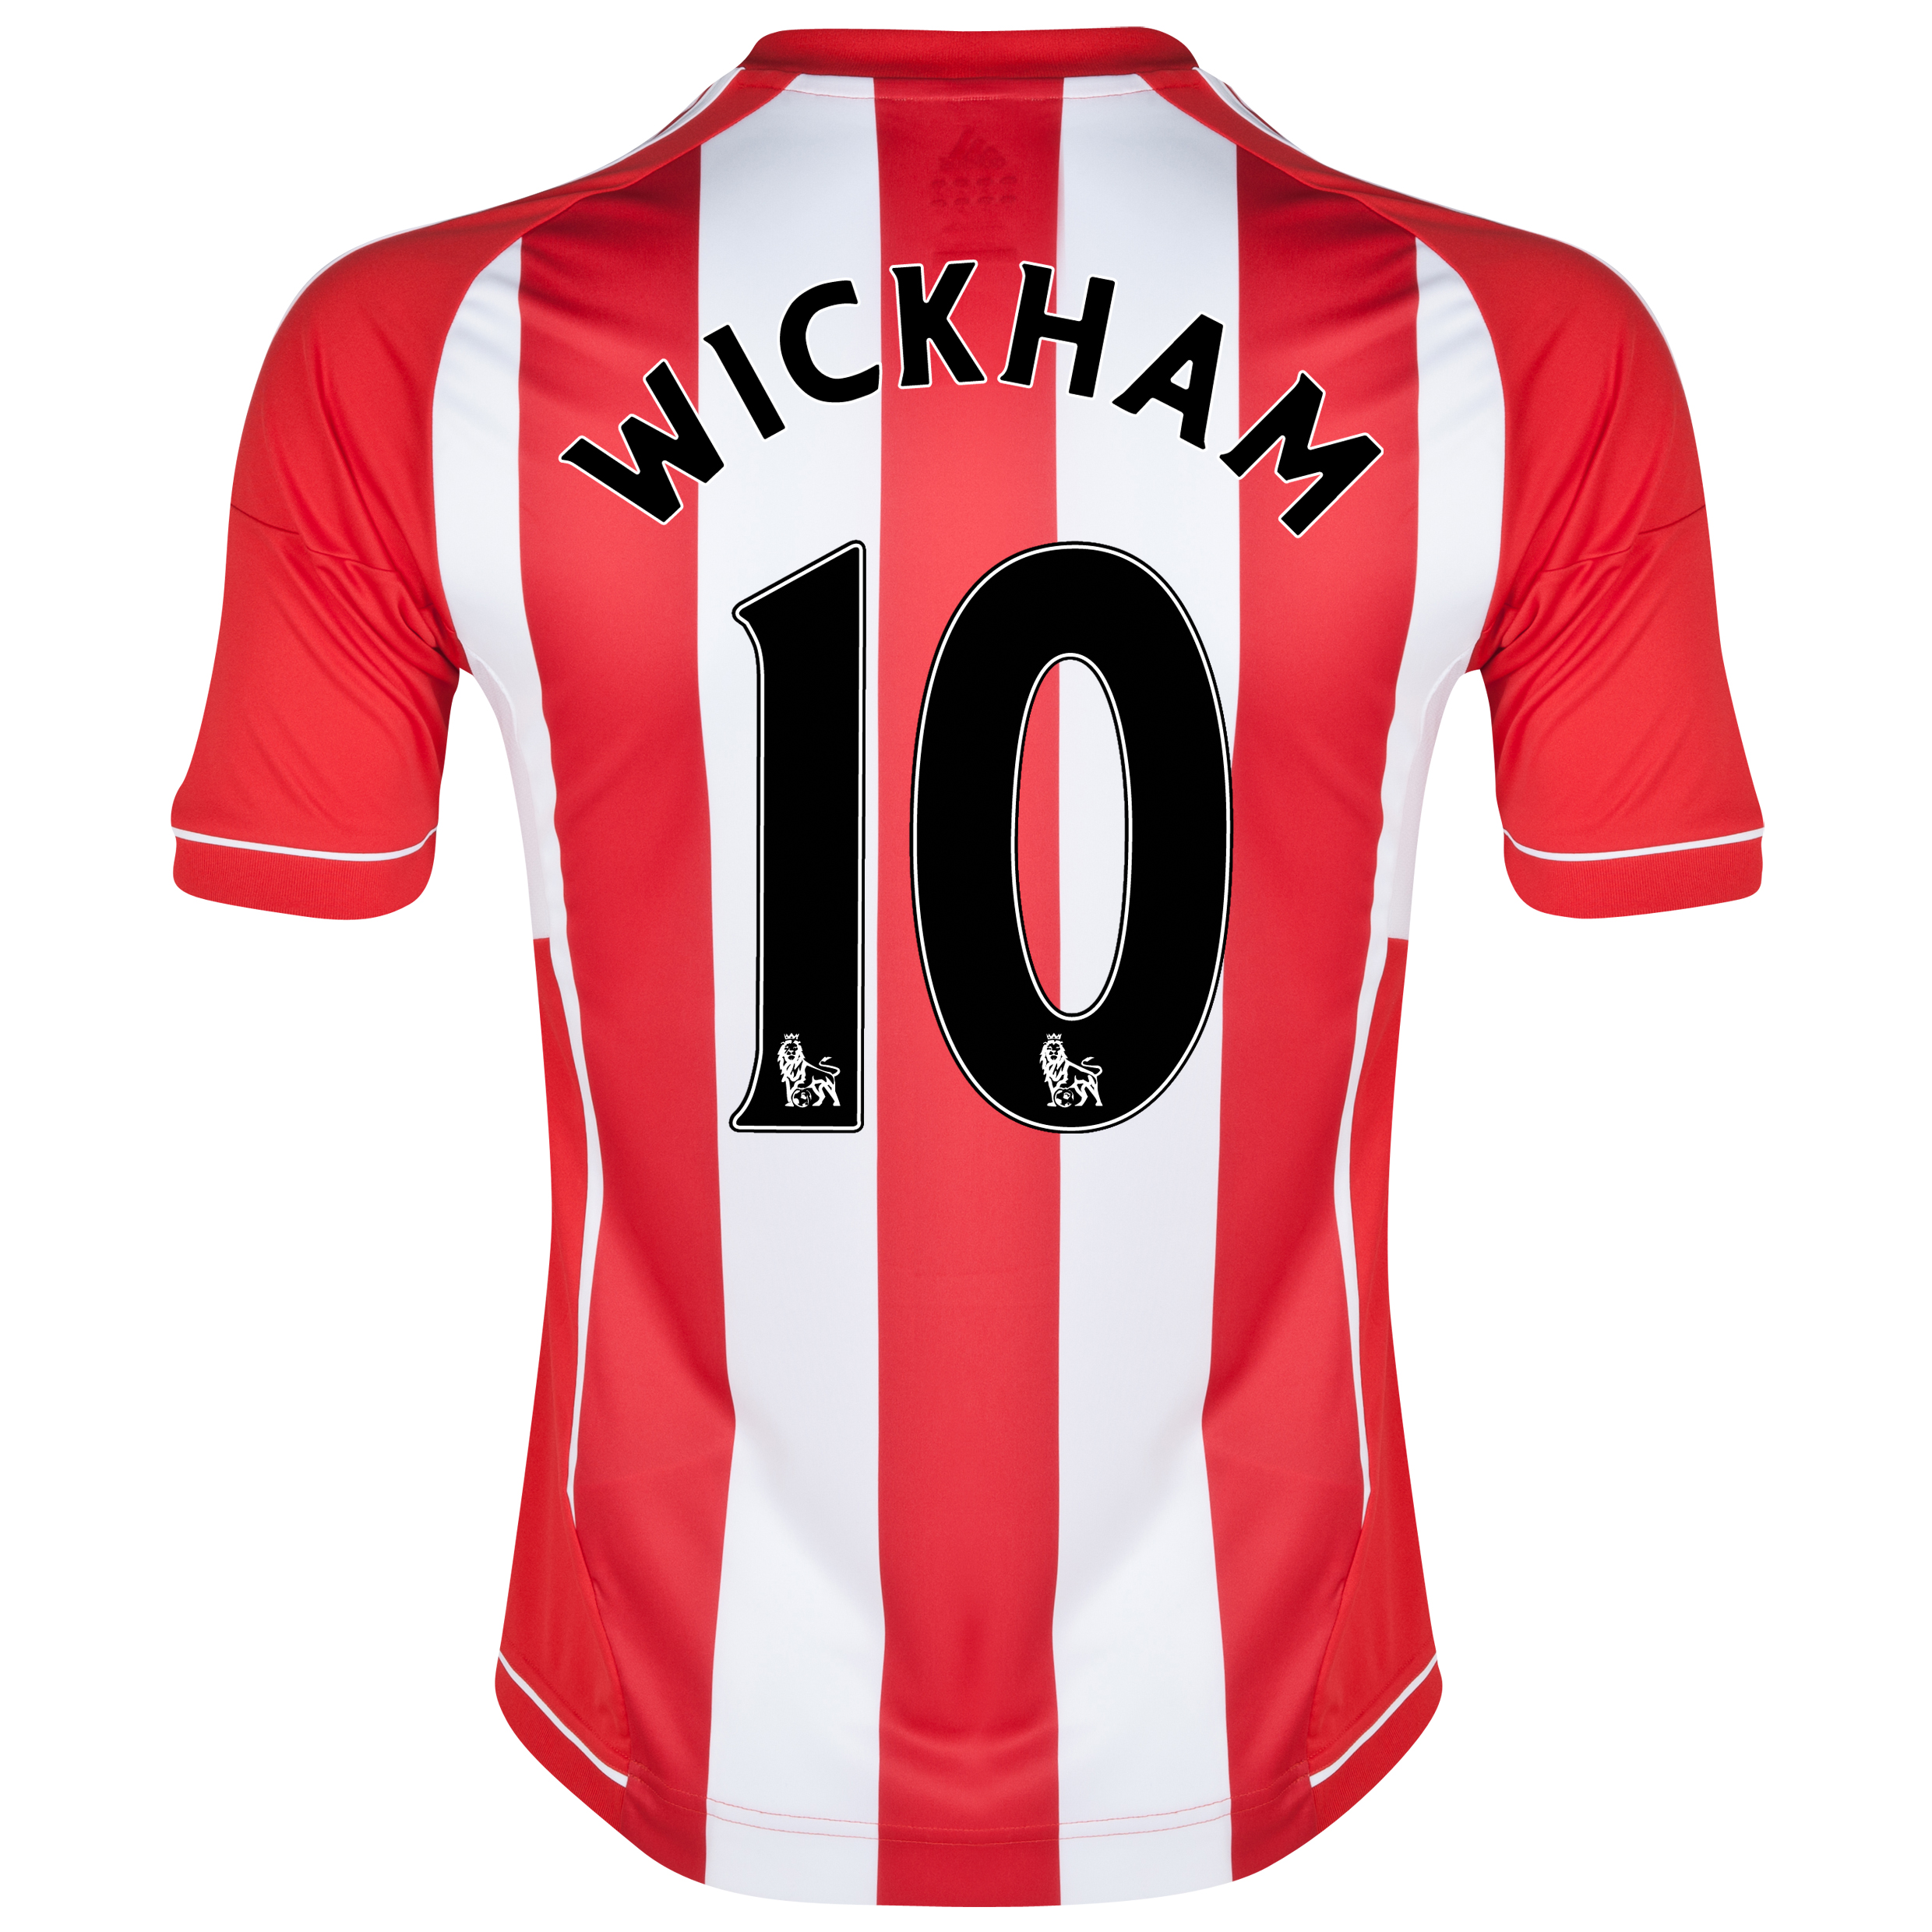 Sunderland Home Shirt 2012/13 with Wickham 10 printing